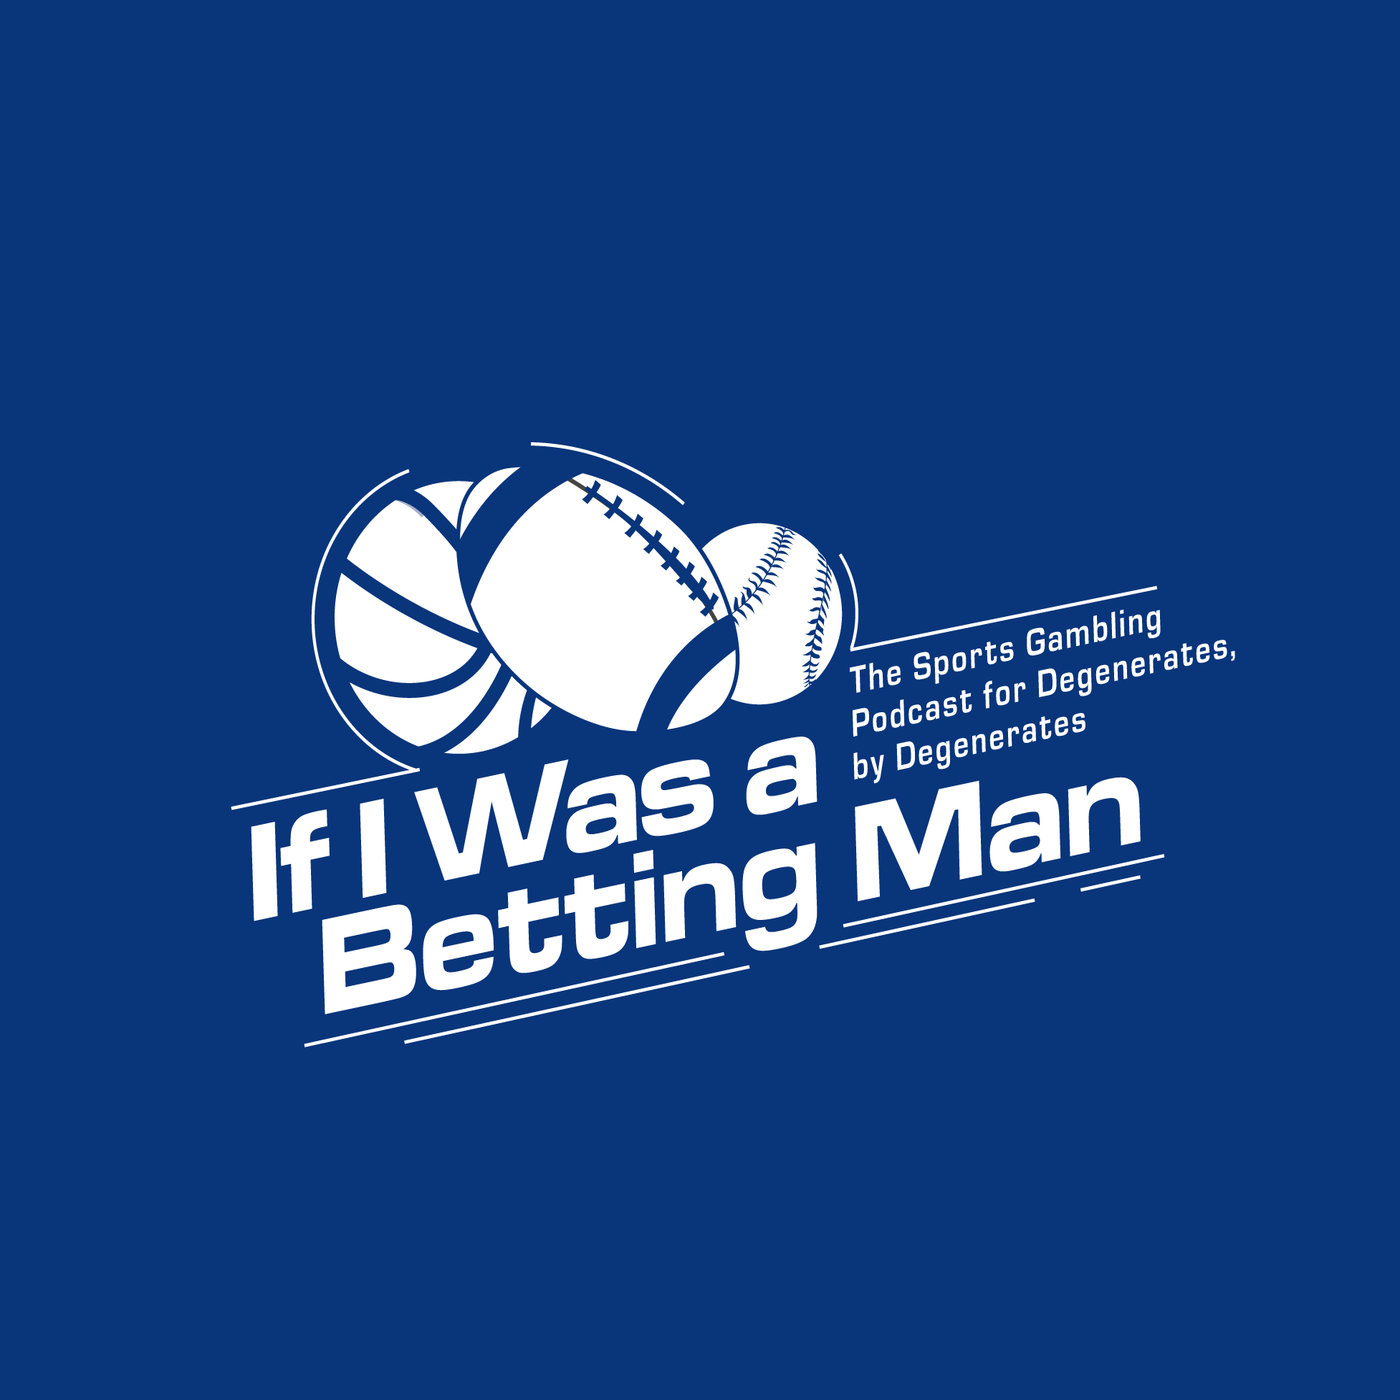 If I Was a Betting Man Week 54